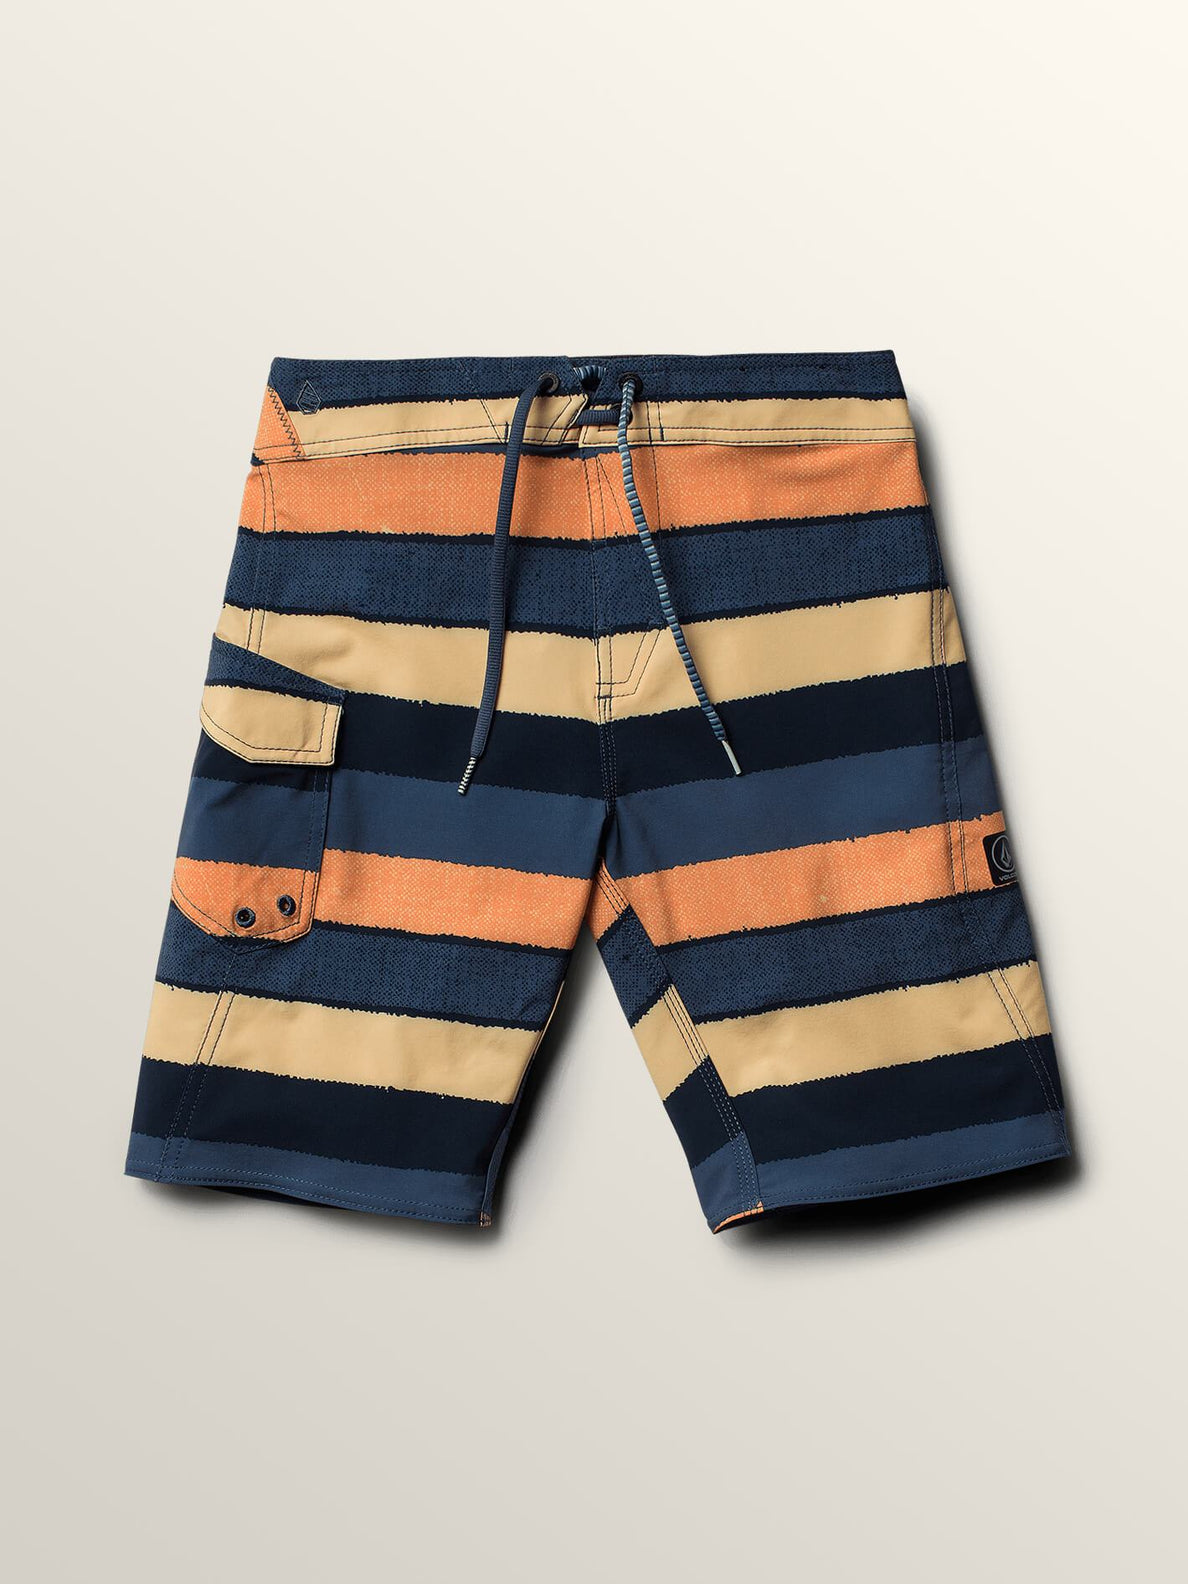 Big Boys Magnetic Liney Mod Boardshorts In Sunburst, Front View